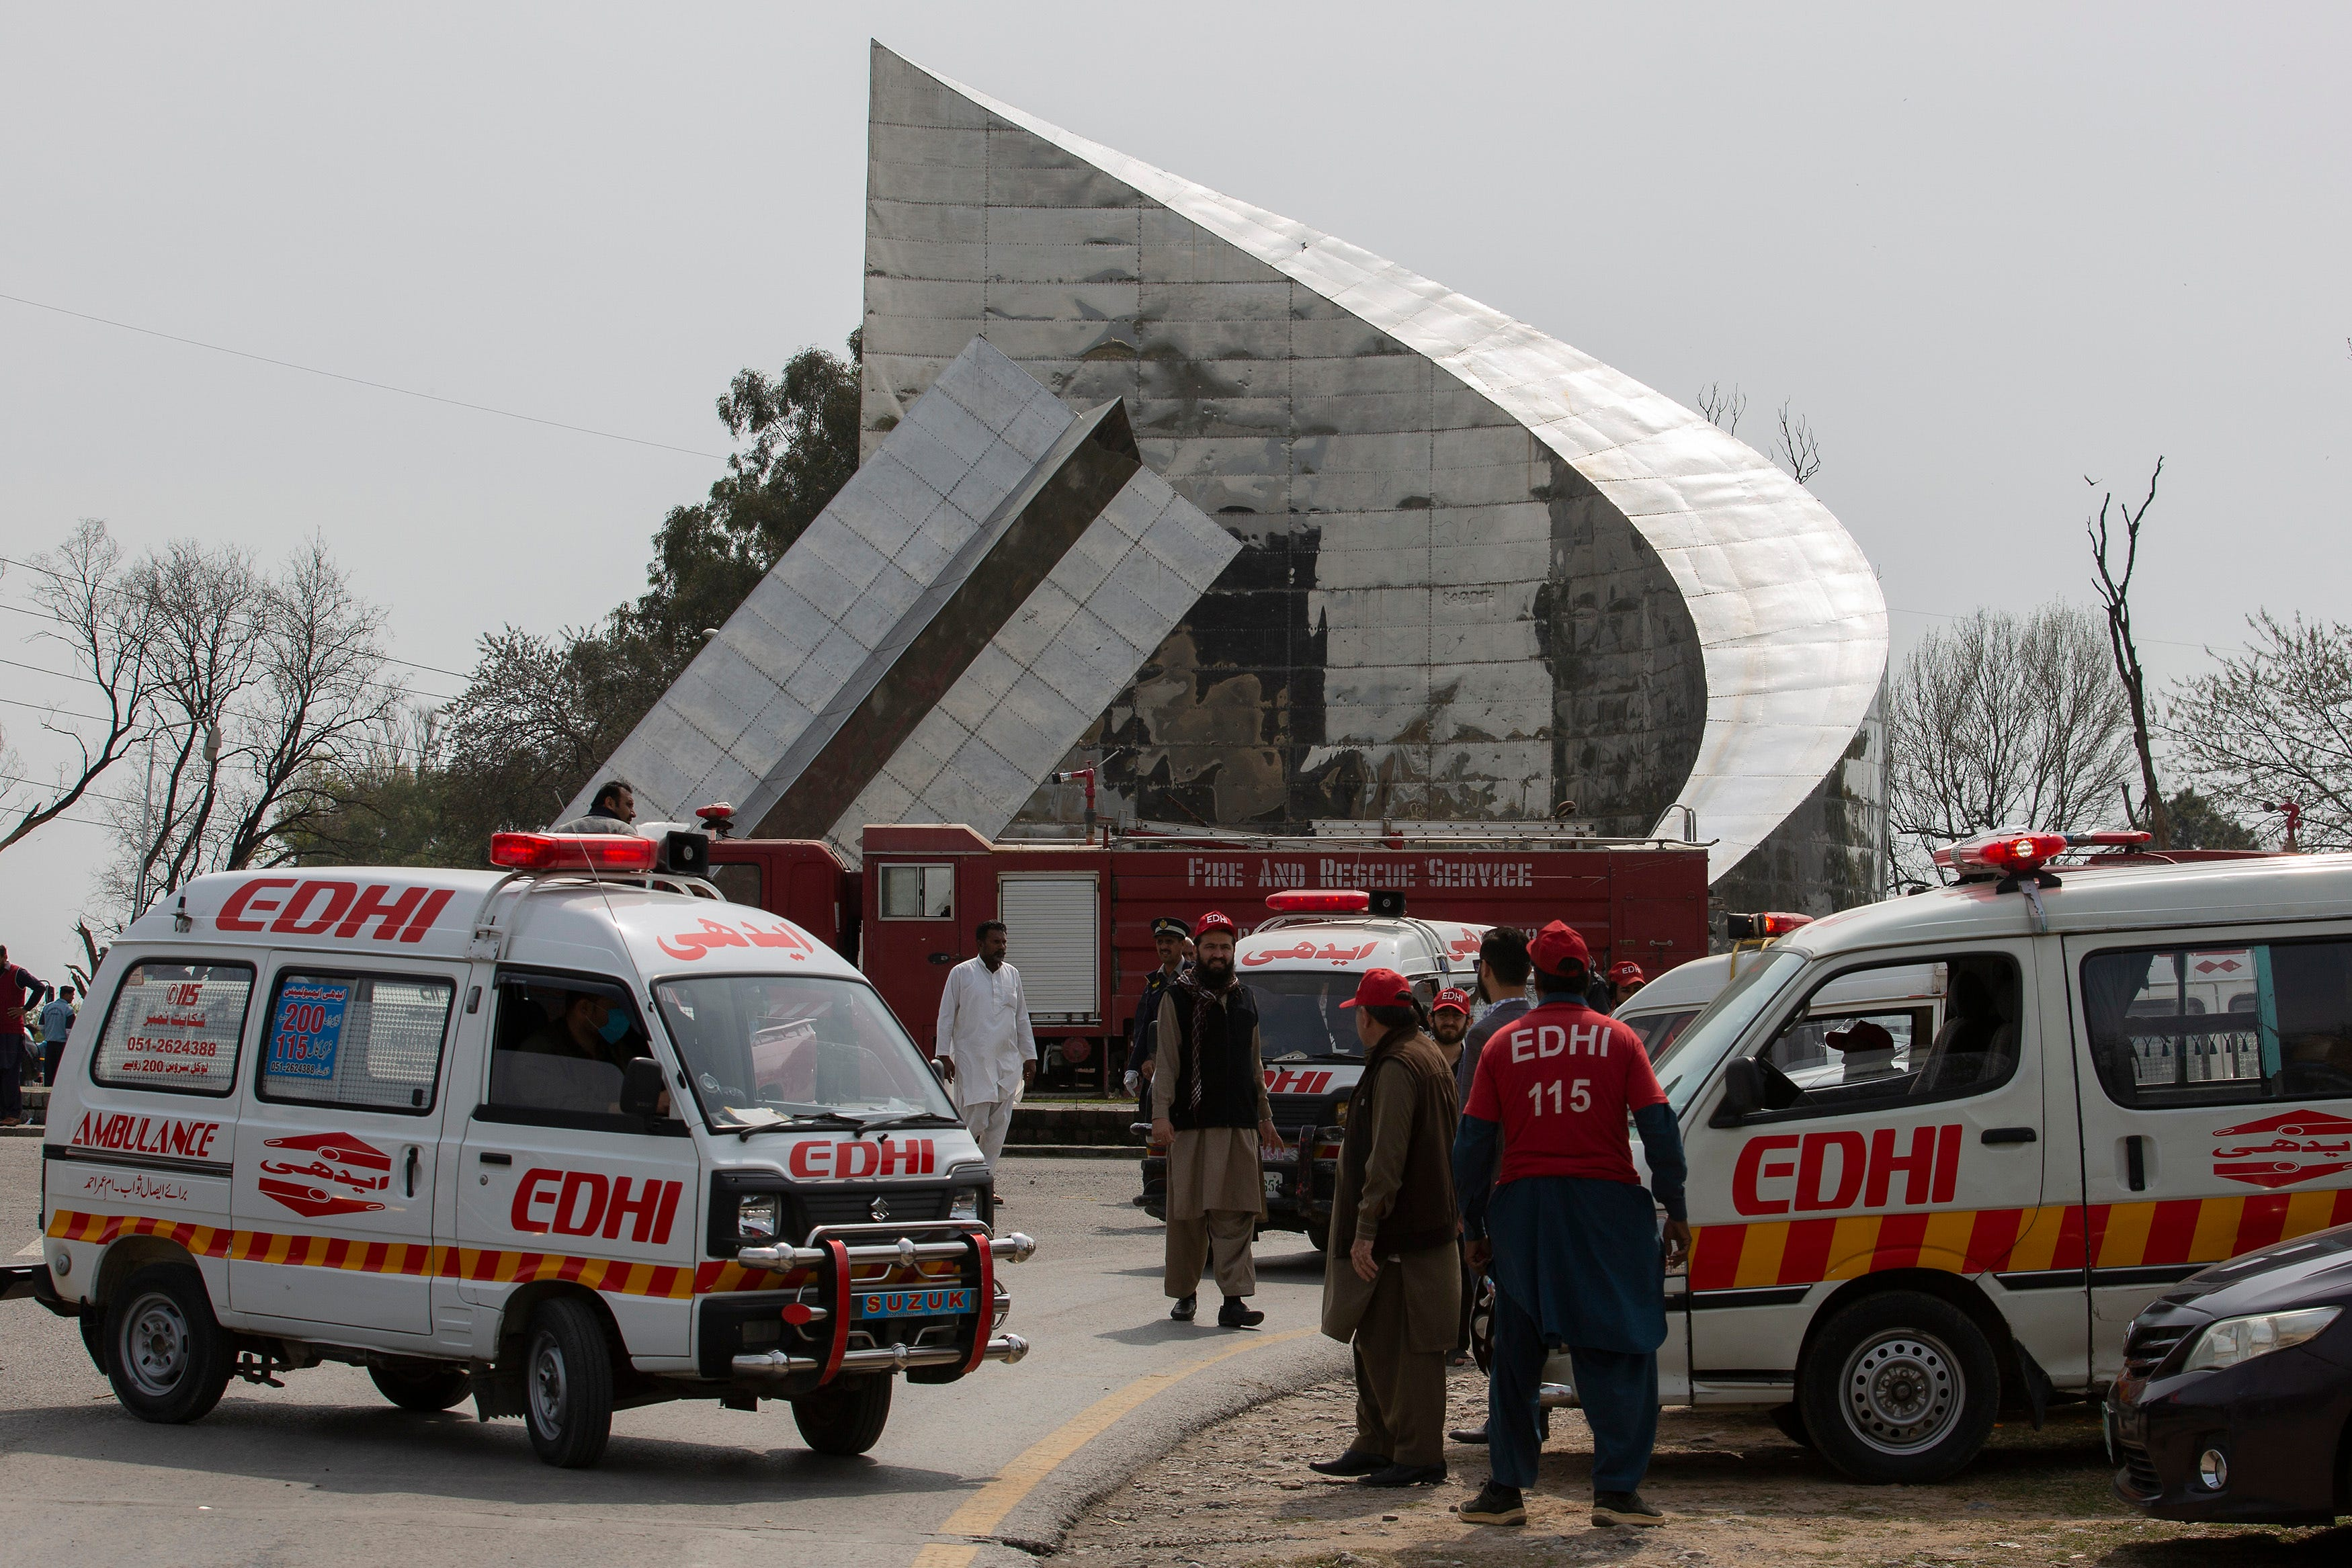 Pakistan Plane Crash Air Force Says Fighter Pilot Died In F 16 Jet